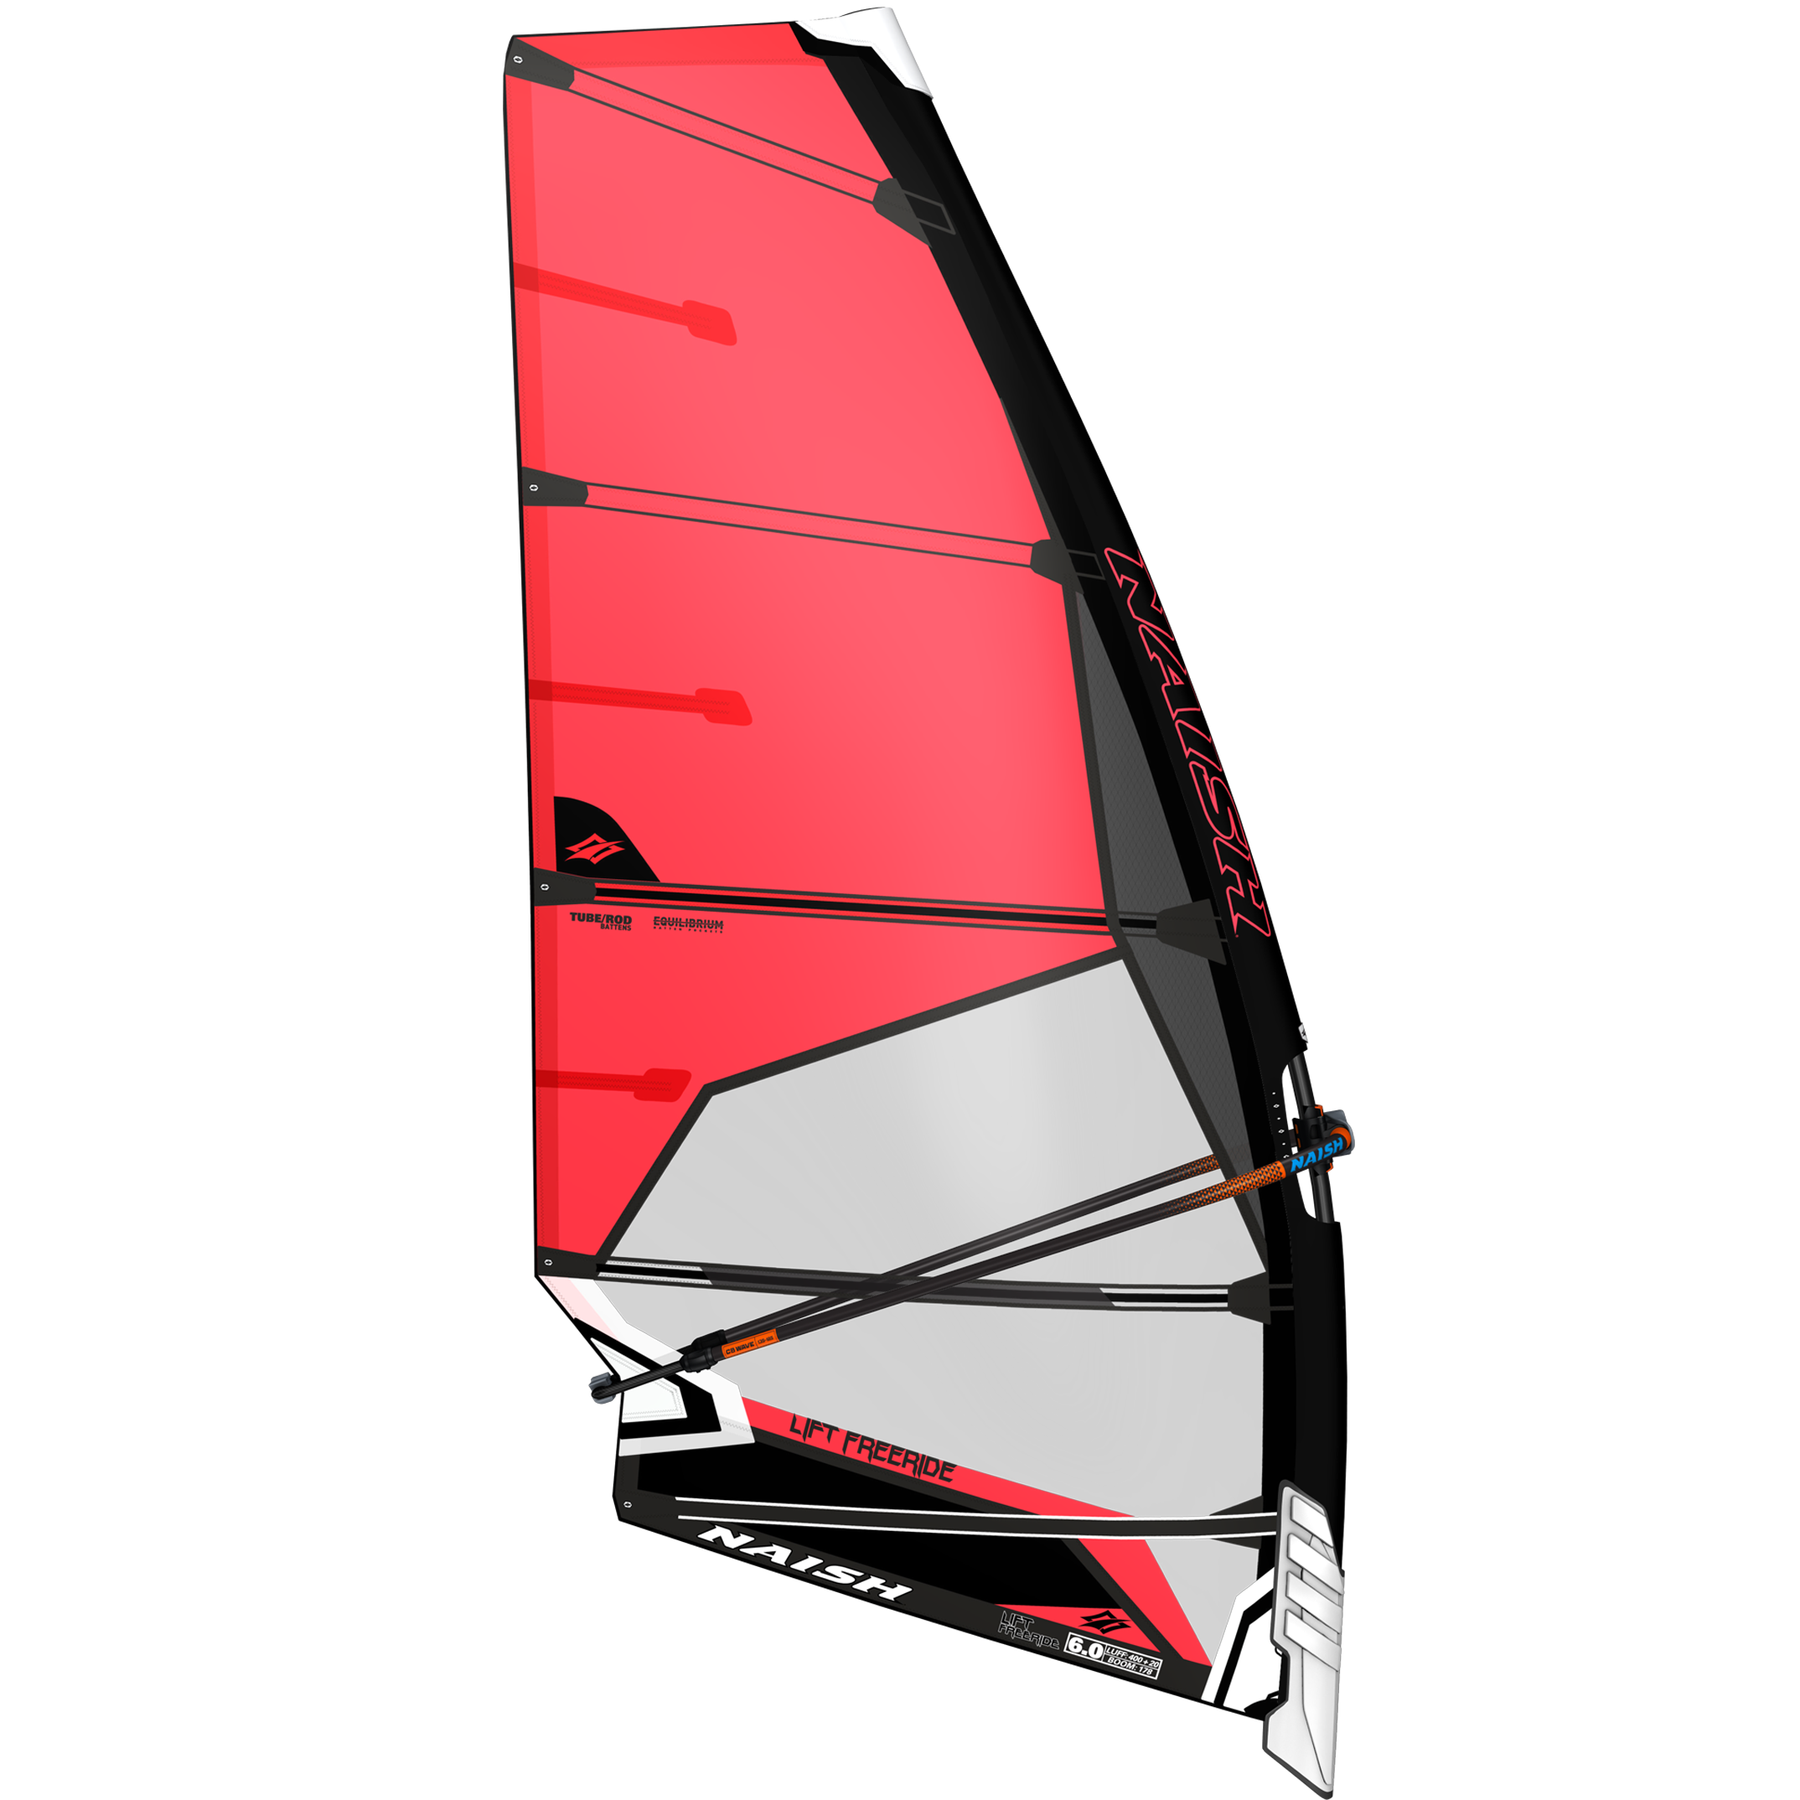 2021 S25 Naish Lift Freeride Windsurf Foiling Sail